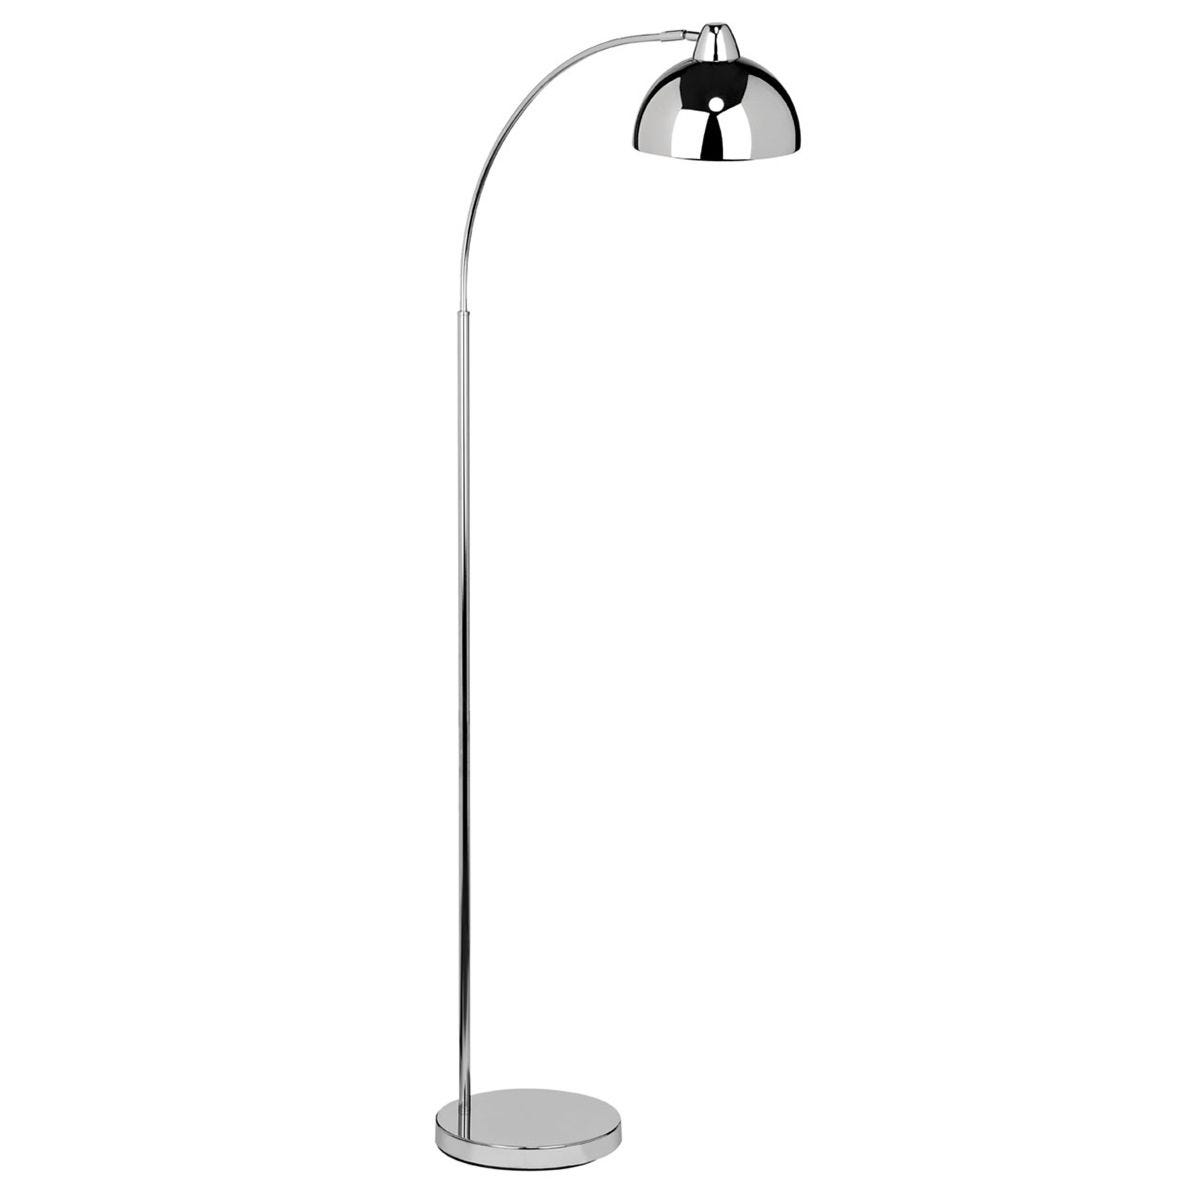 Premier Housewares Calle Floor Lamp - Chrome Finish Metal